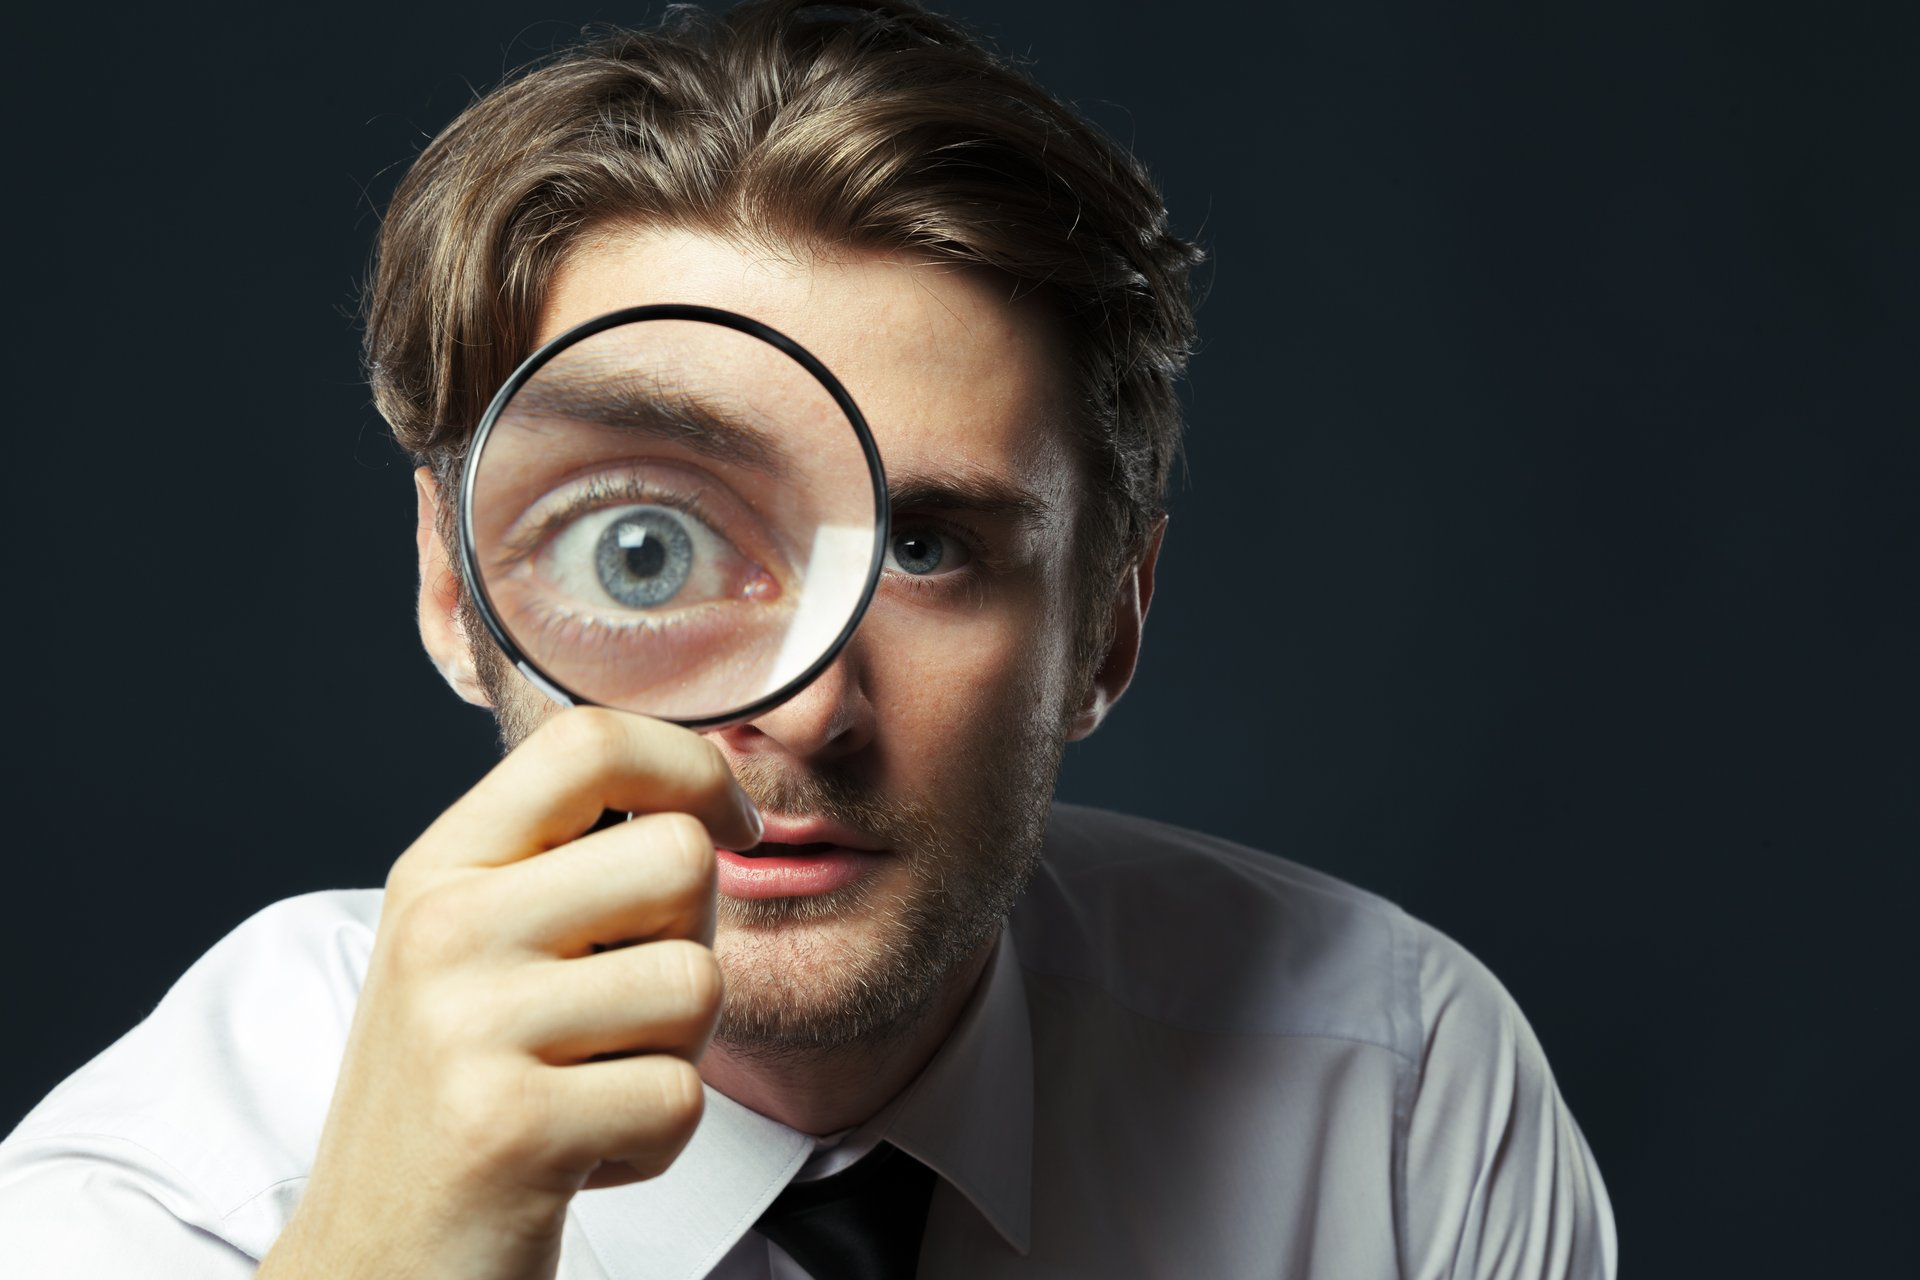 A man holds up and looks through a magnifying glass